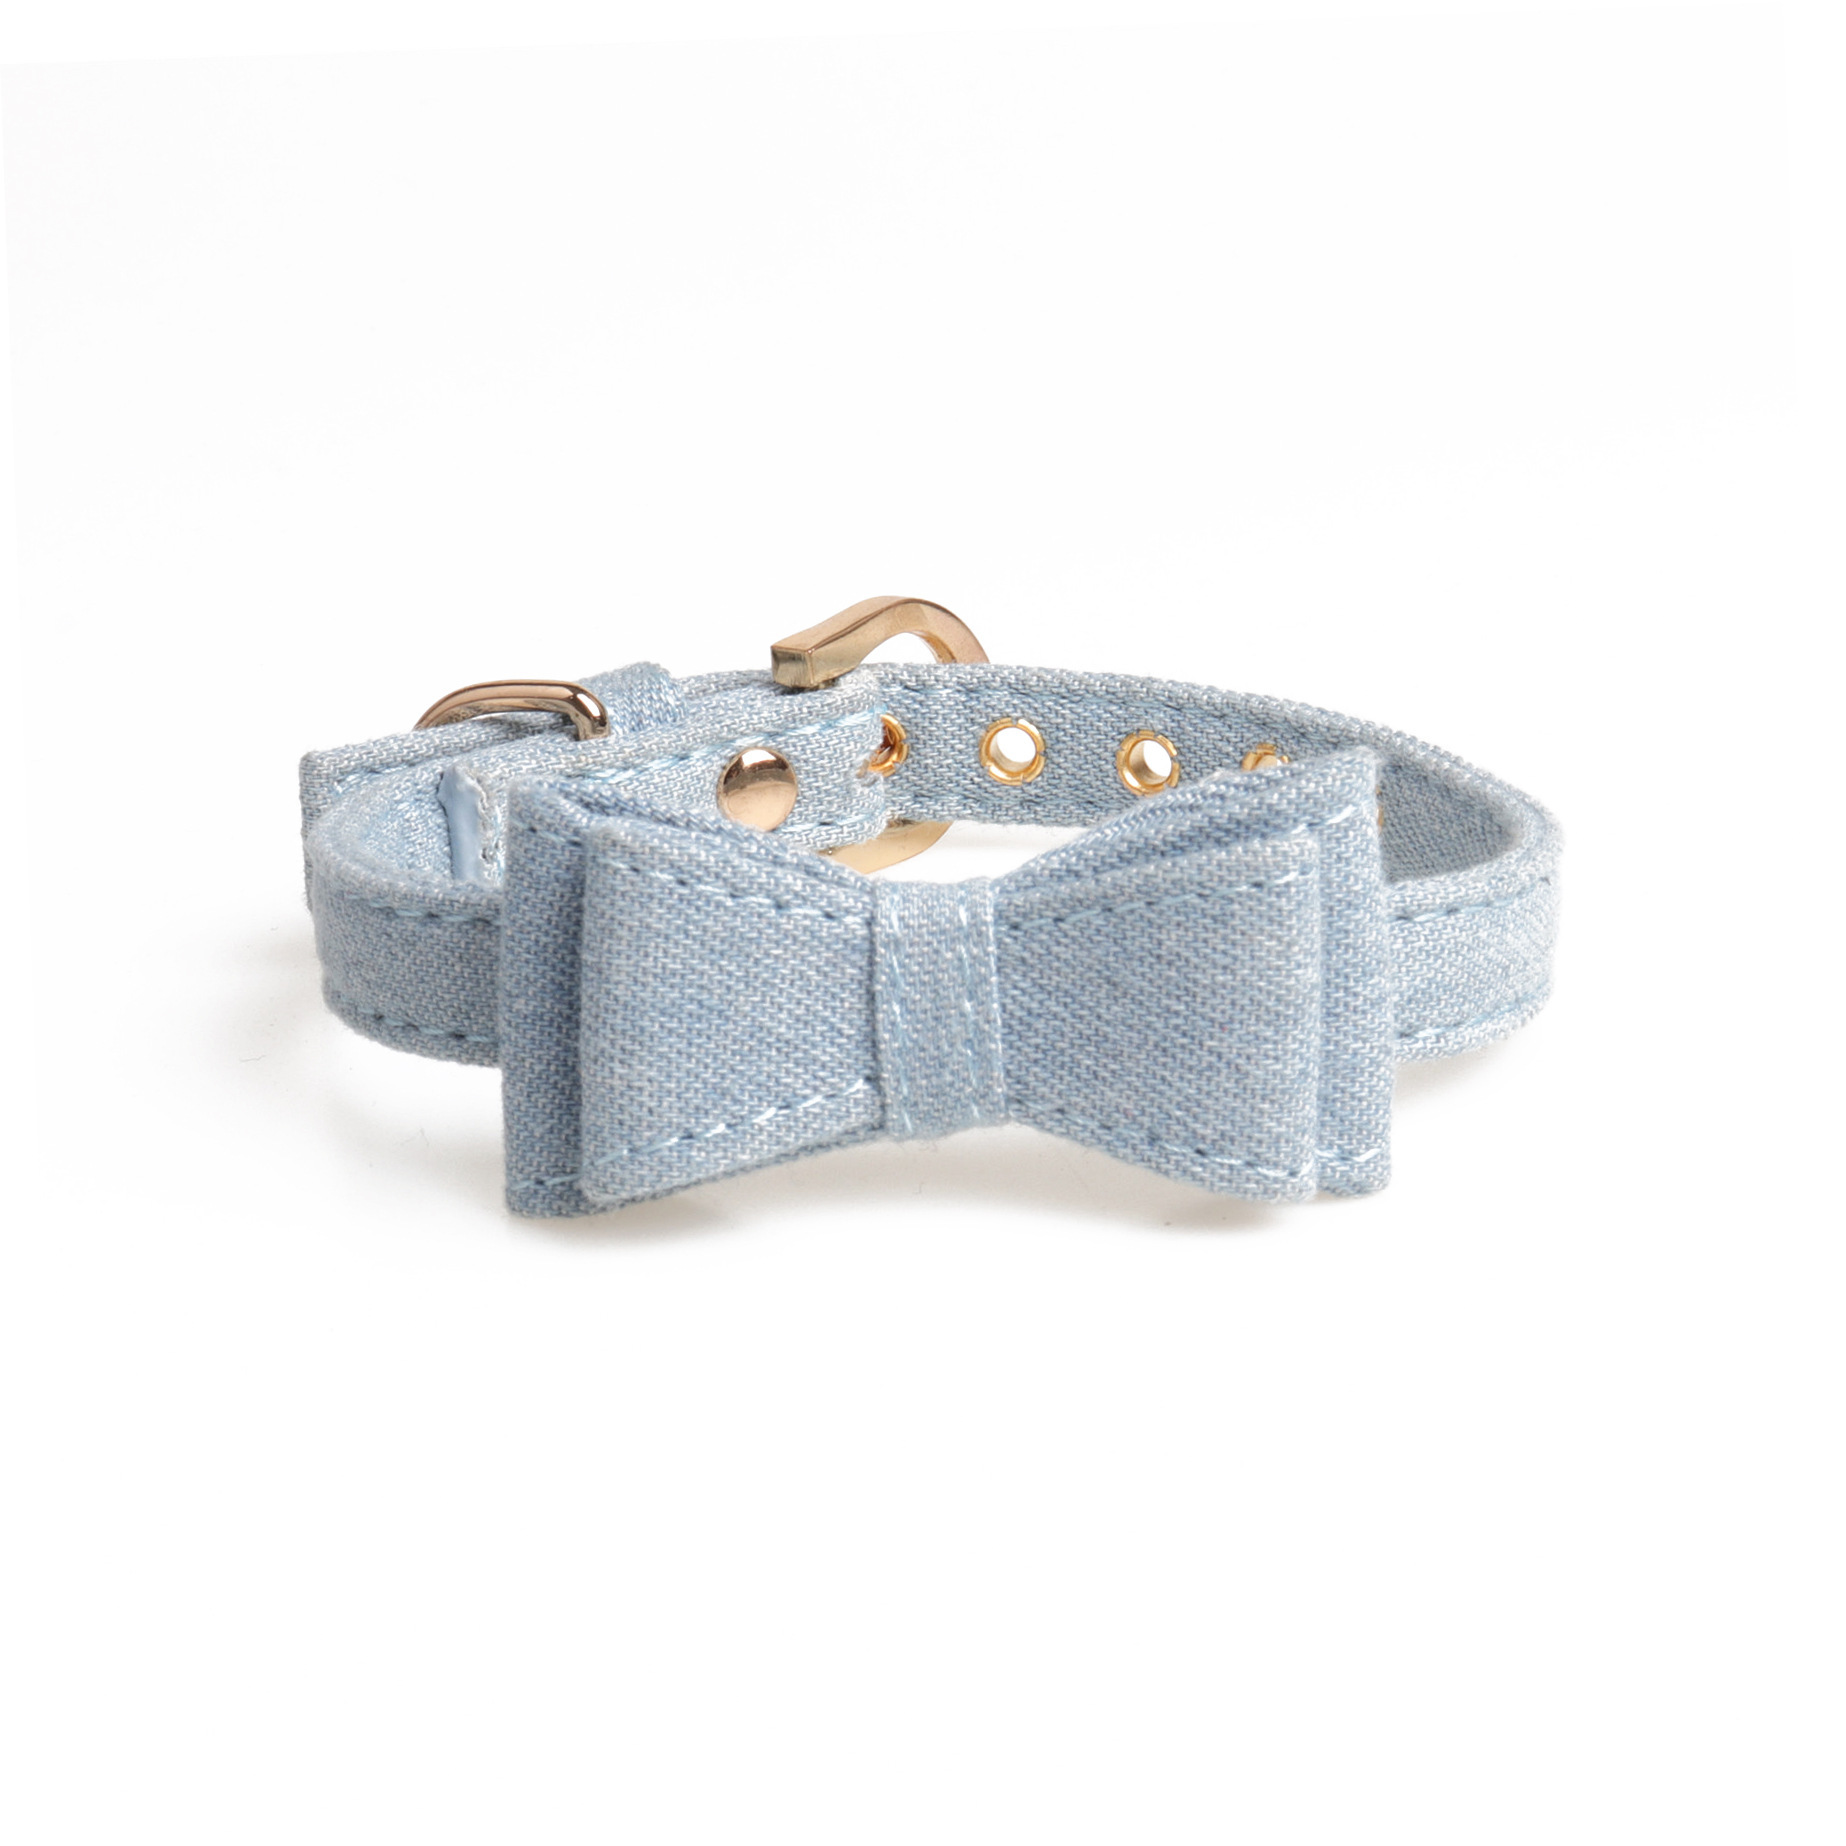 Amin Georgia Blue Color Cowboy Bow Neck Ring Pet Collar Small And Medium Dog Neck Ring